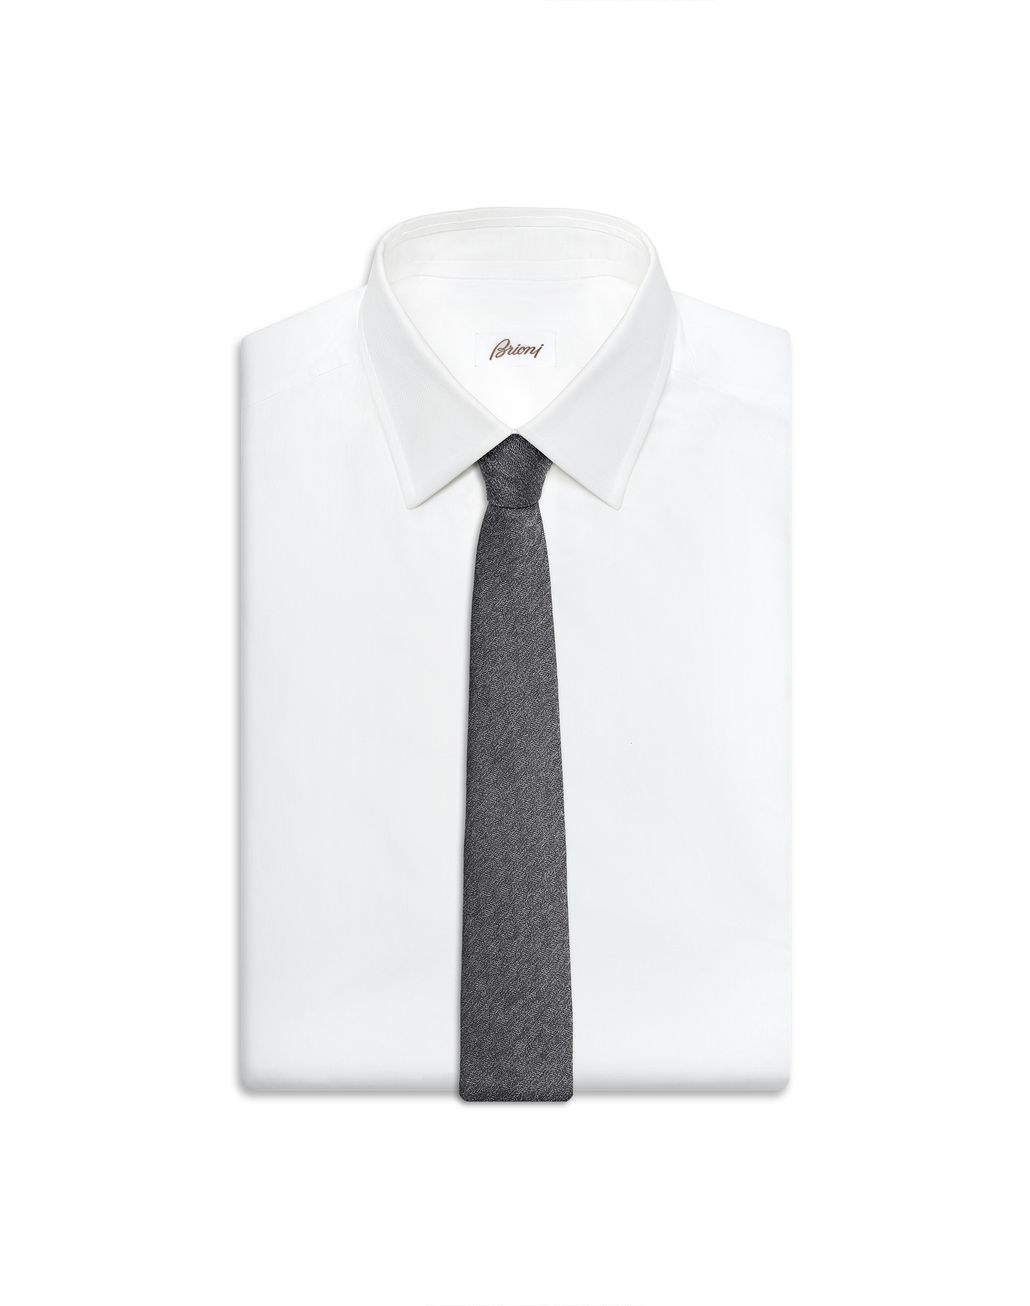 BRIONI Cravate texturée gris graphite Cravate Homme e